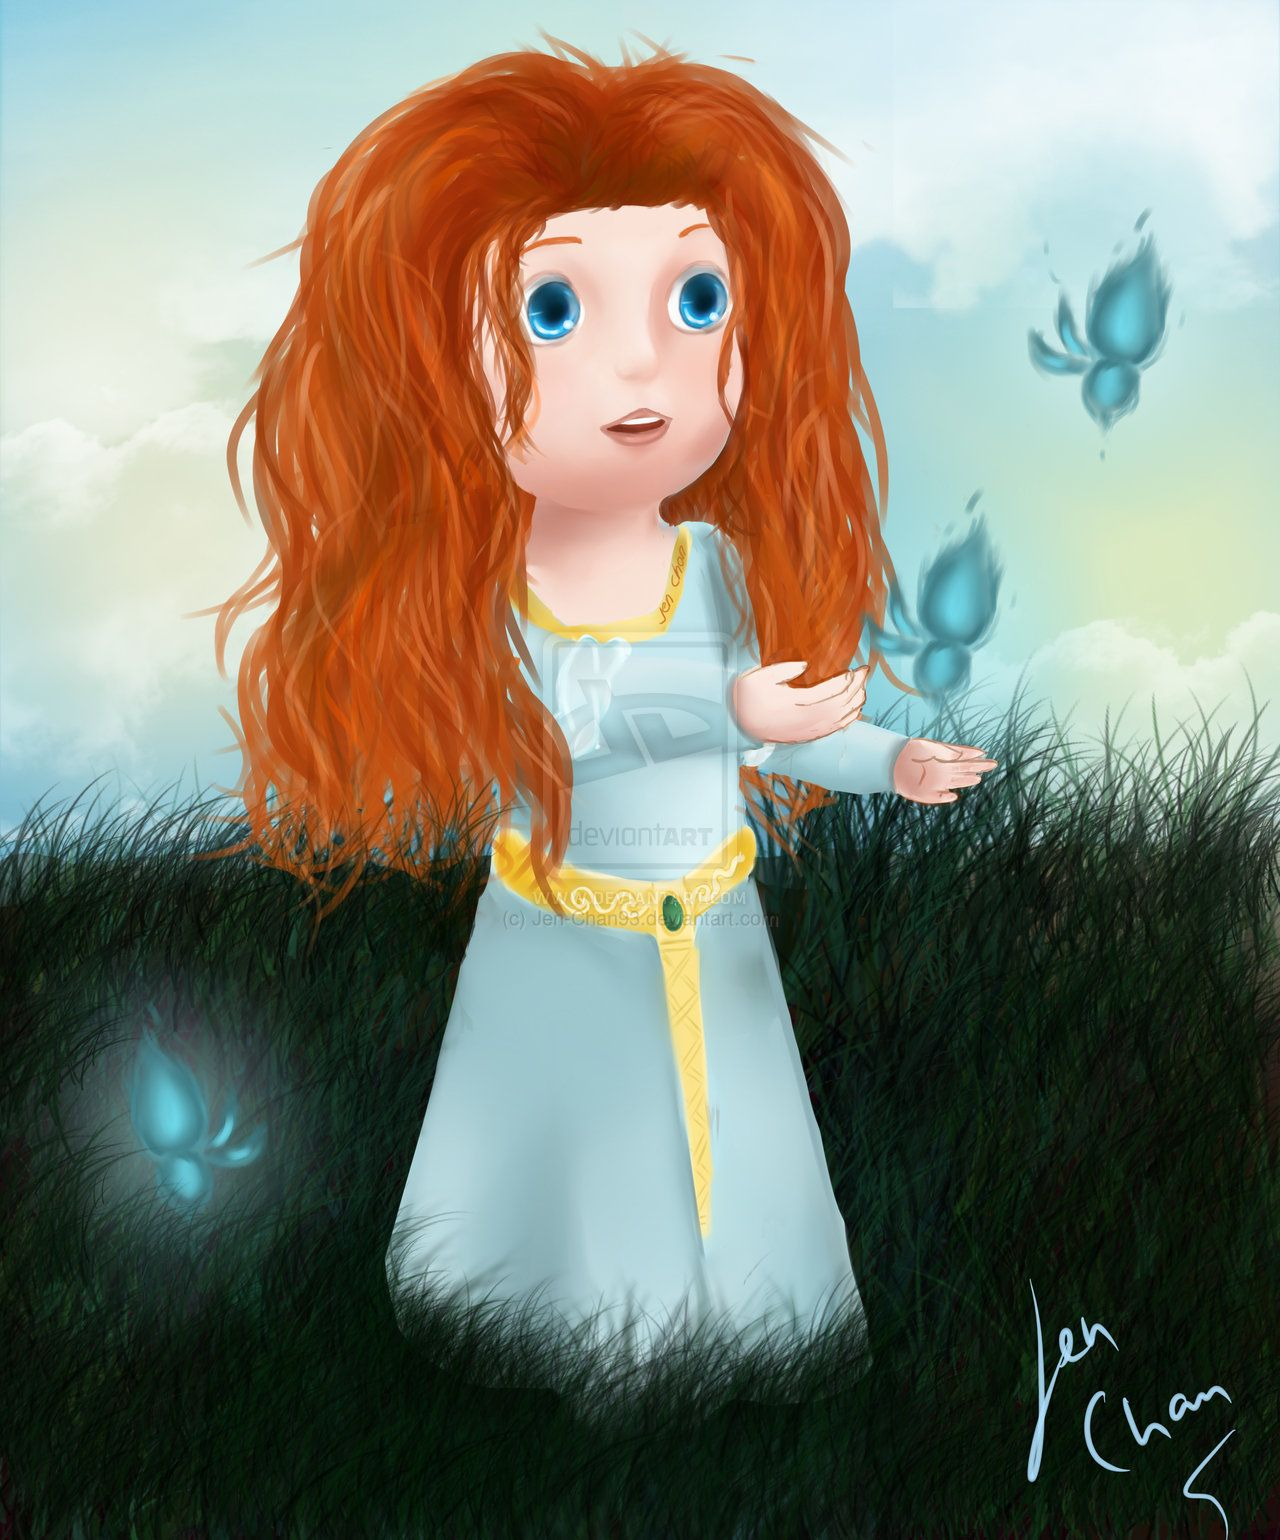 Princess Merida Art | fan art little princess merida brave by jen chan93 fan art digital art ...